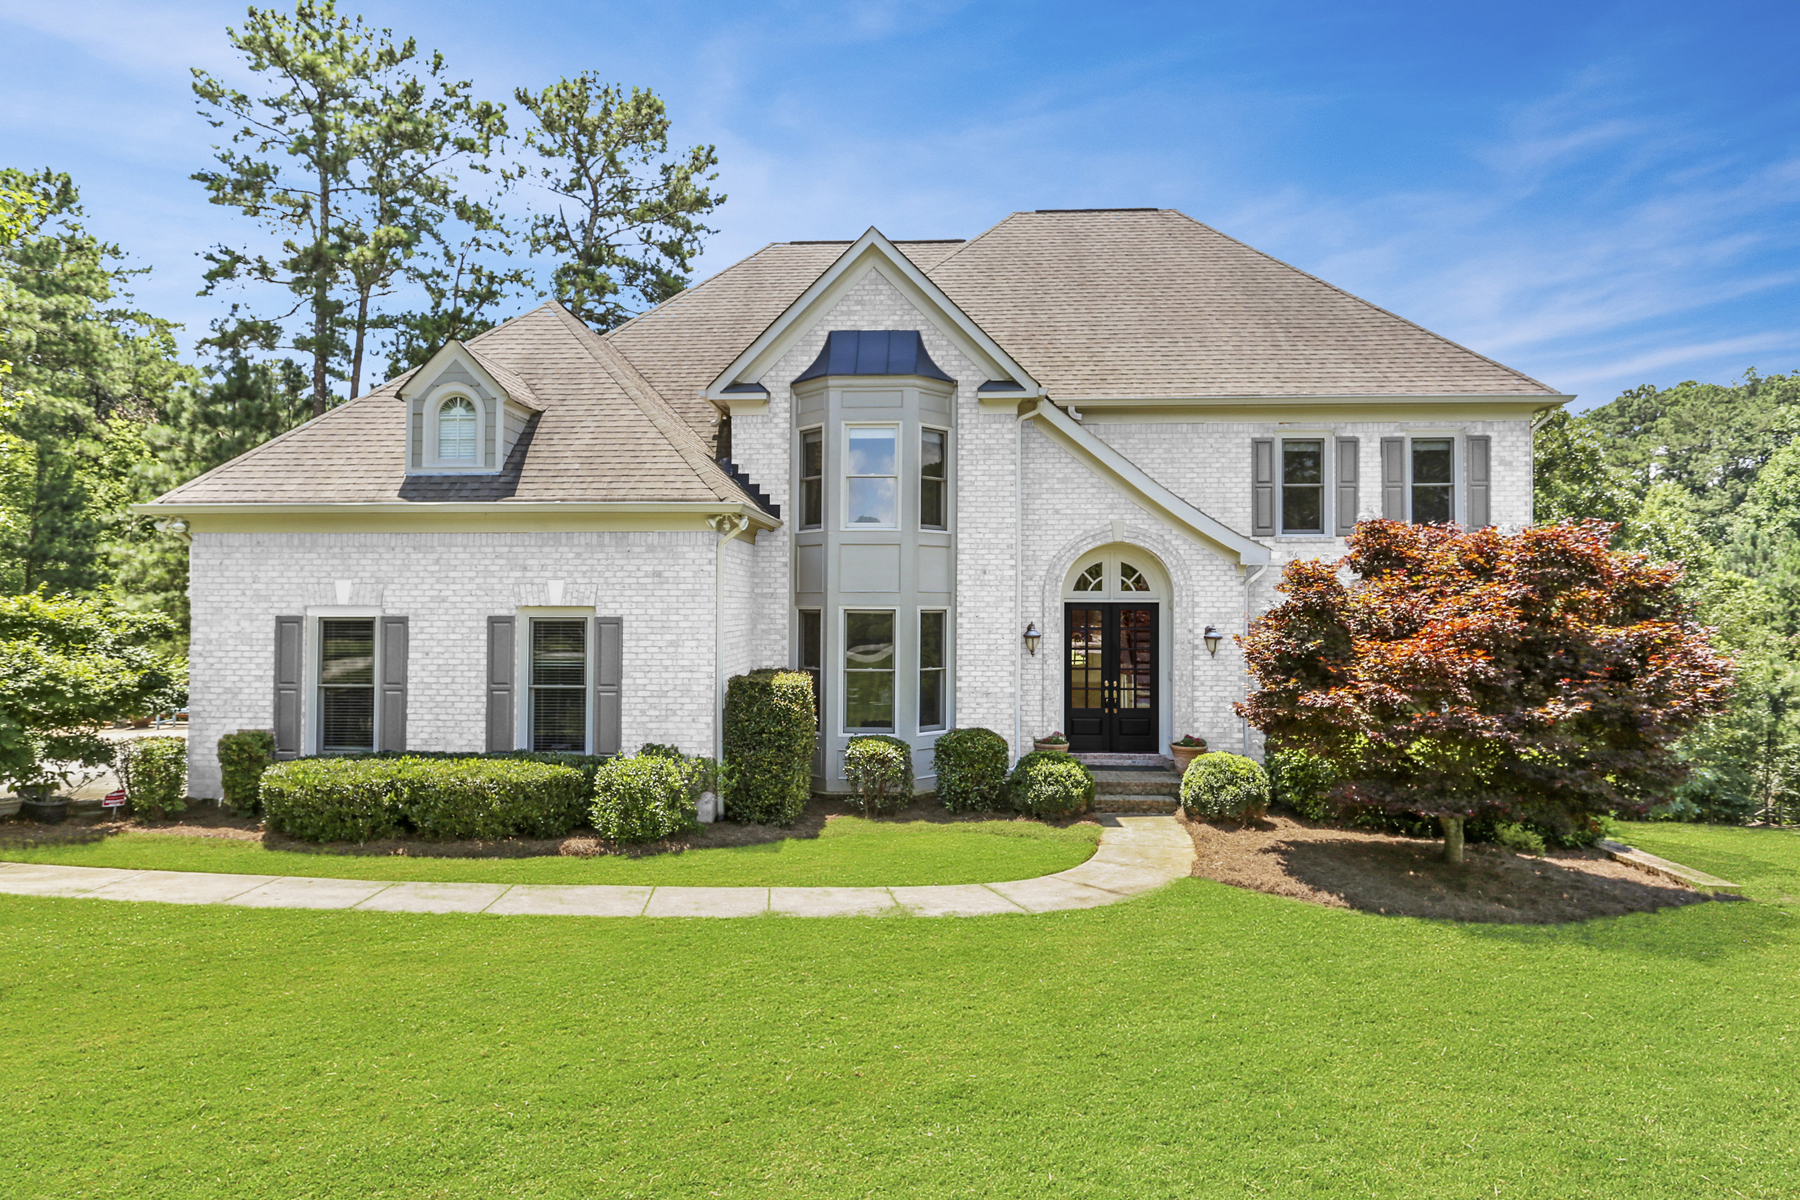 Single Family Home for Sale at Amazing Home on Fabulous Cul De Sac Lot Near Downtown 1500 Eversedge Dr Alpharetta, Georgia 30009 United States